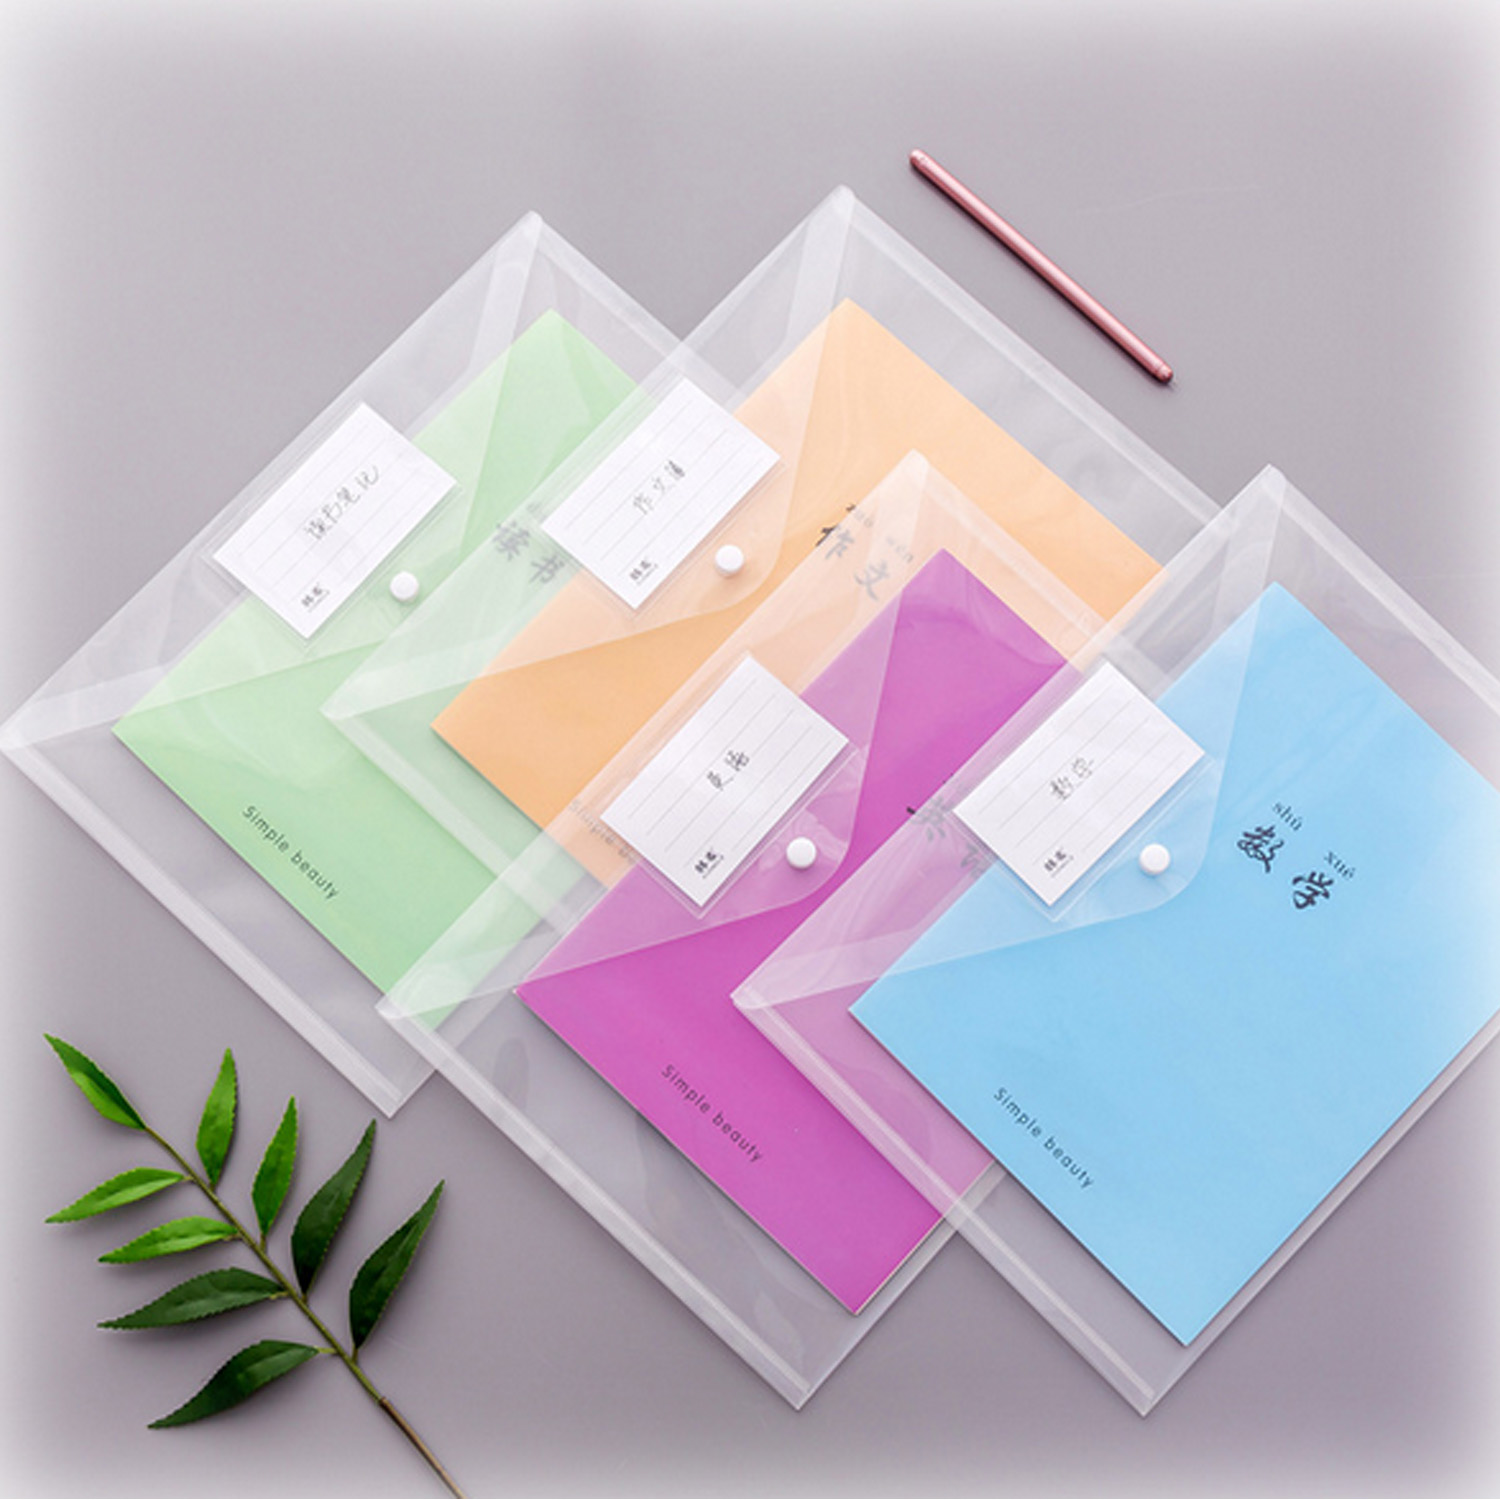 10PCS A4 Size Transparent Clear PVC File Document Bags Storage Folders W/Card Holder For Office School Home Stationery Supplies